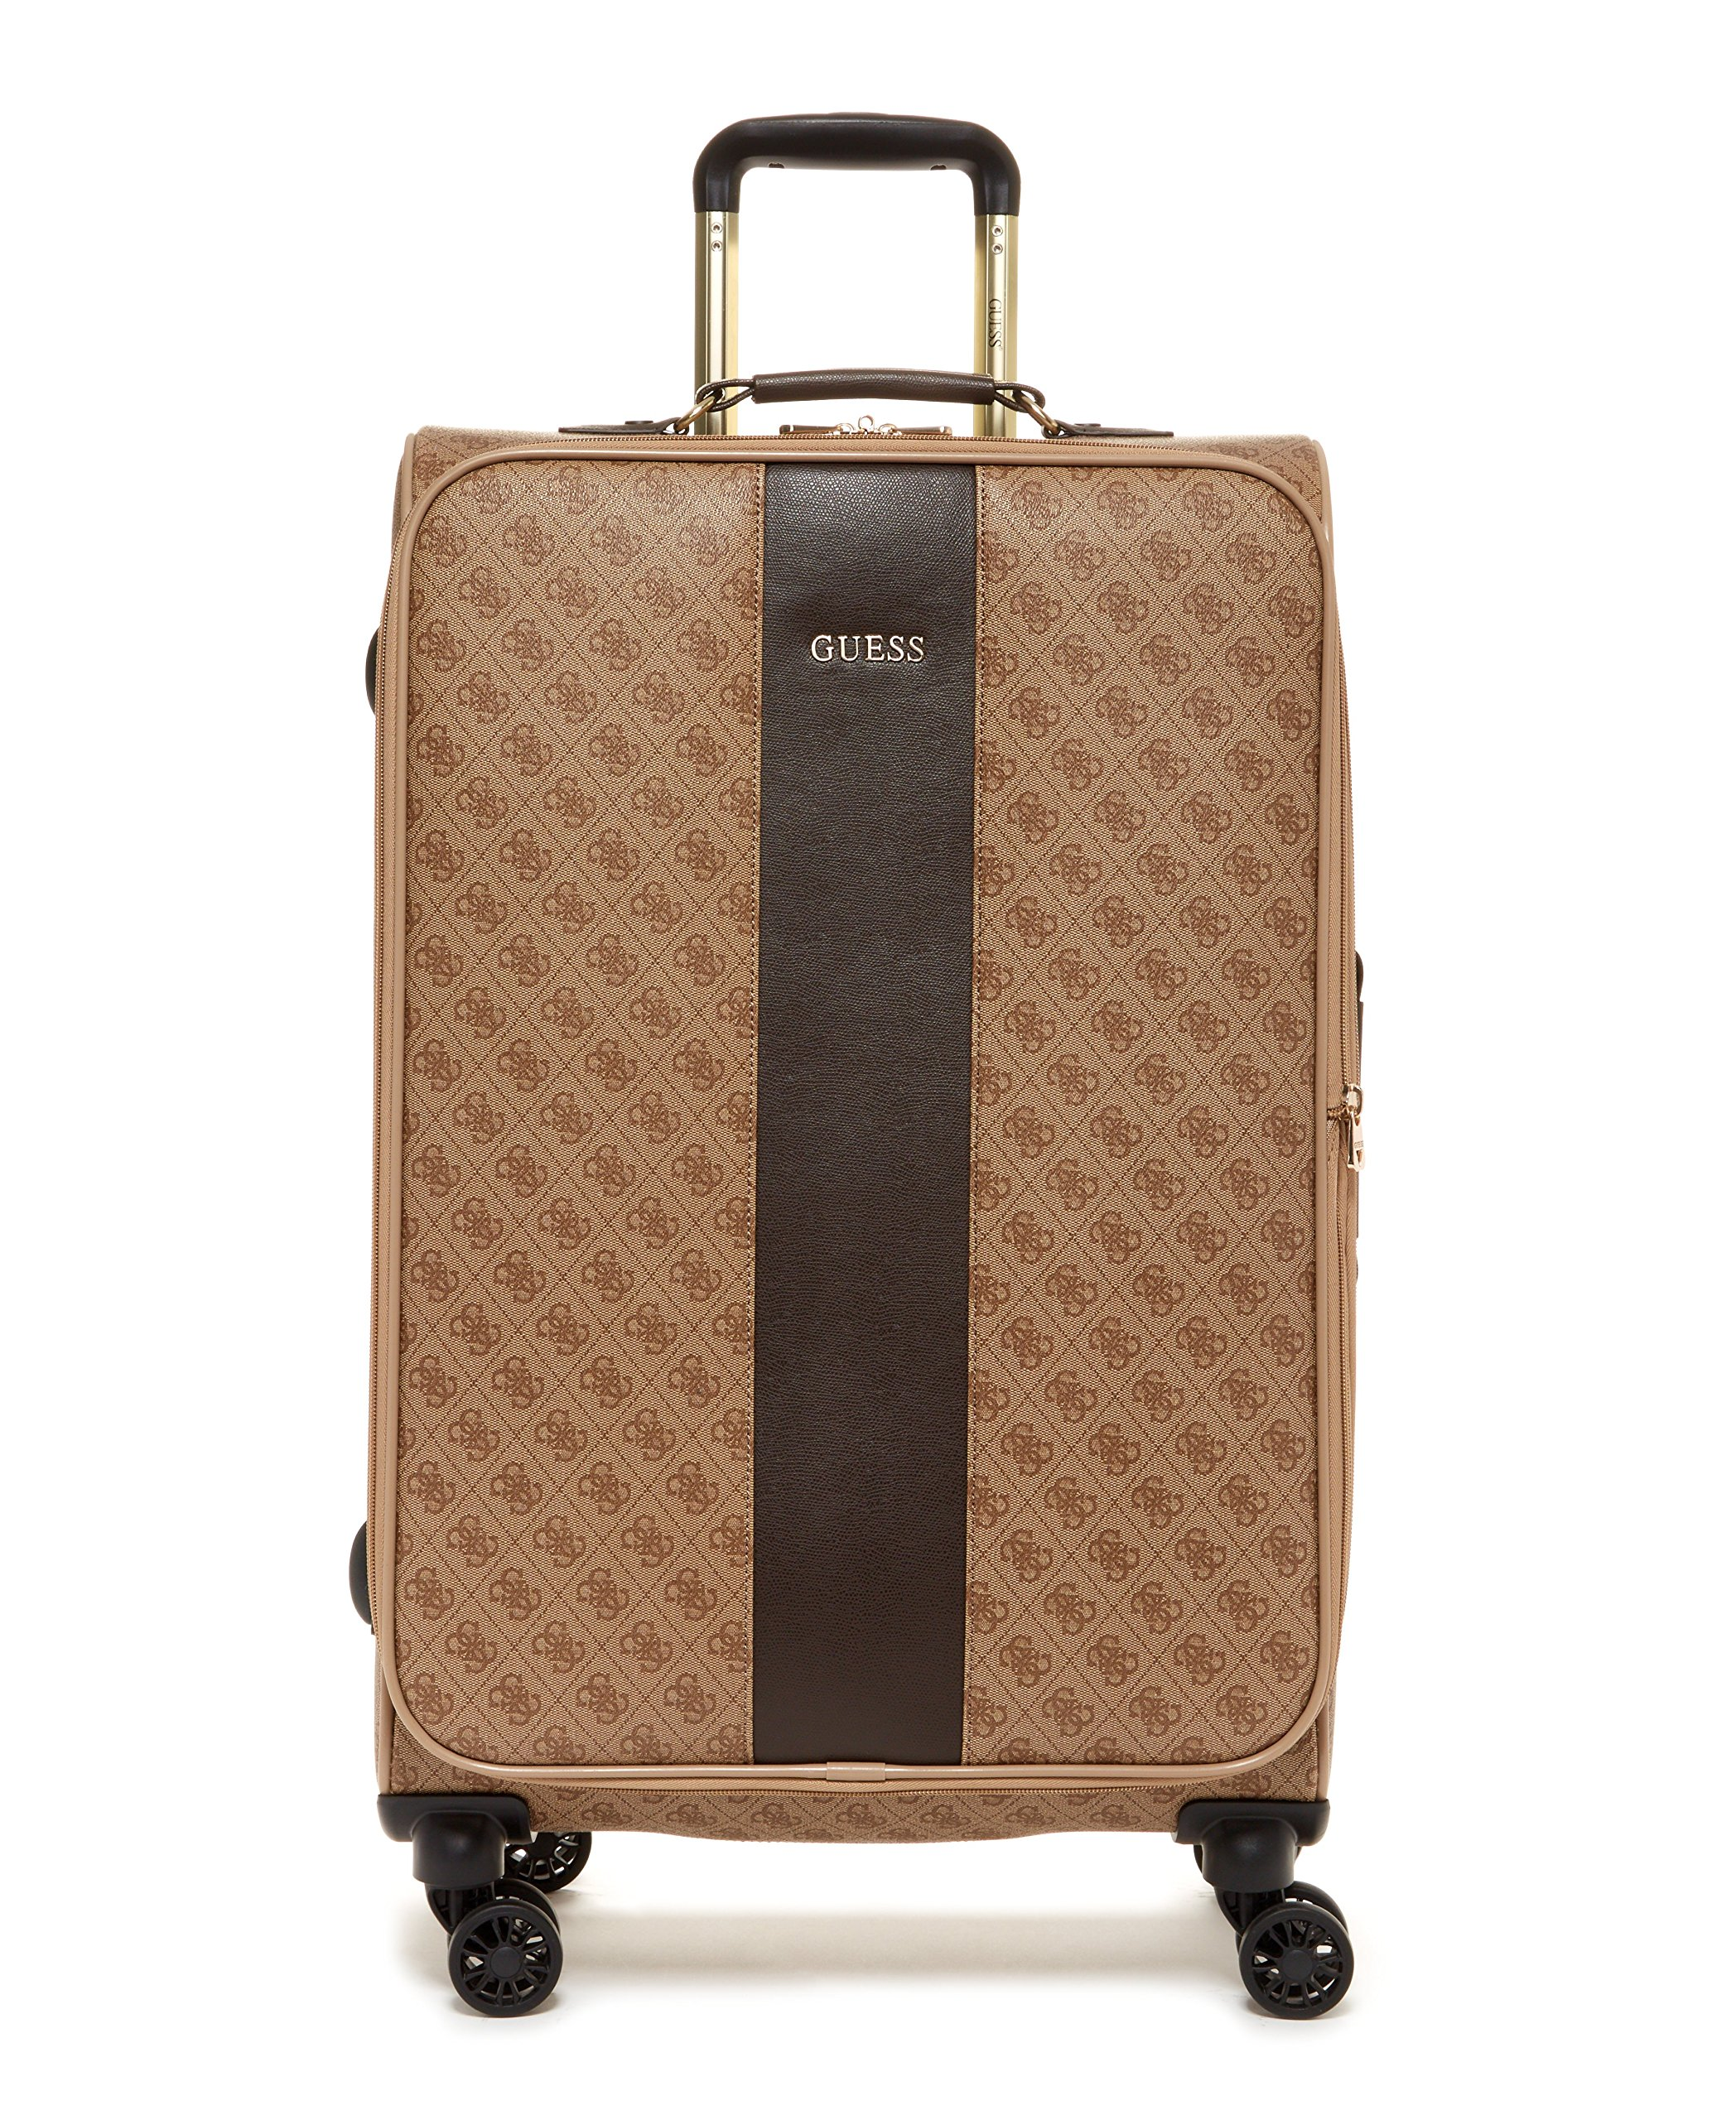 Paris Chic Style Guess Nissana 28 Inch Best Travel Luggage Check In Soft Shell Lightweight Suitcase Four Wheels spinner